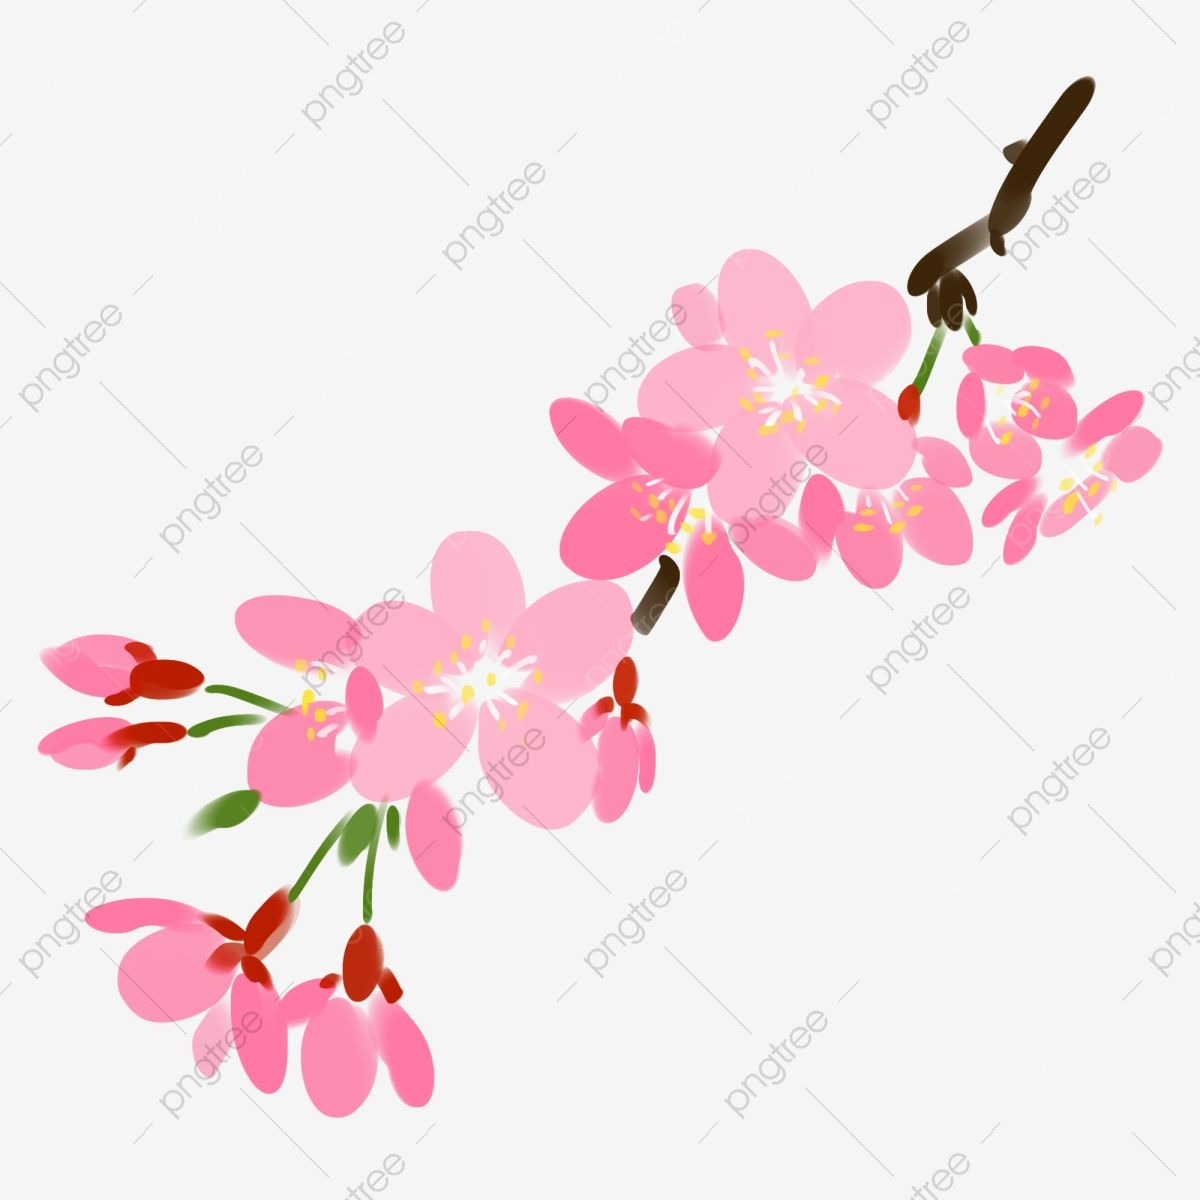 Pink Cherry Blossom Cherry Blossom Decoration Flowers Cherry Tree Cherry Blossom Clipart Branch Leaves Png Transparent Clipart Image And Psd File For Free Do Cherry Blossom Background Cherry Blossom Tree Tree